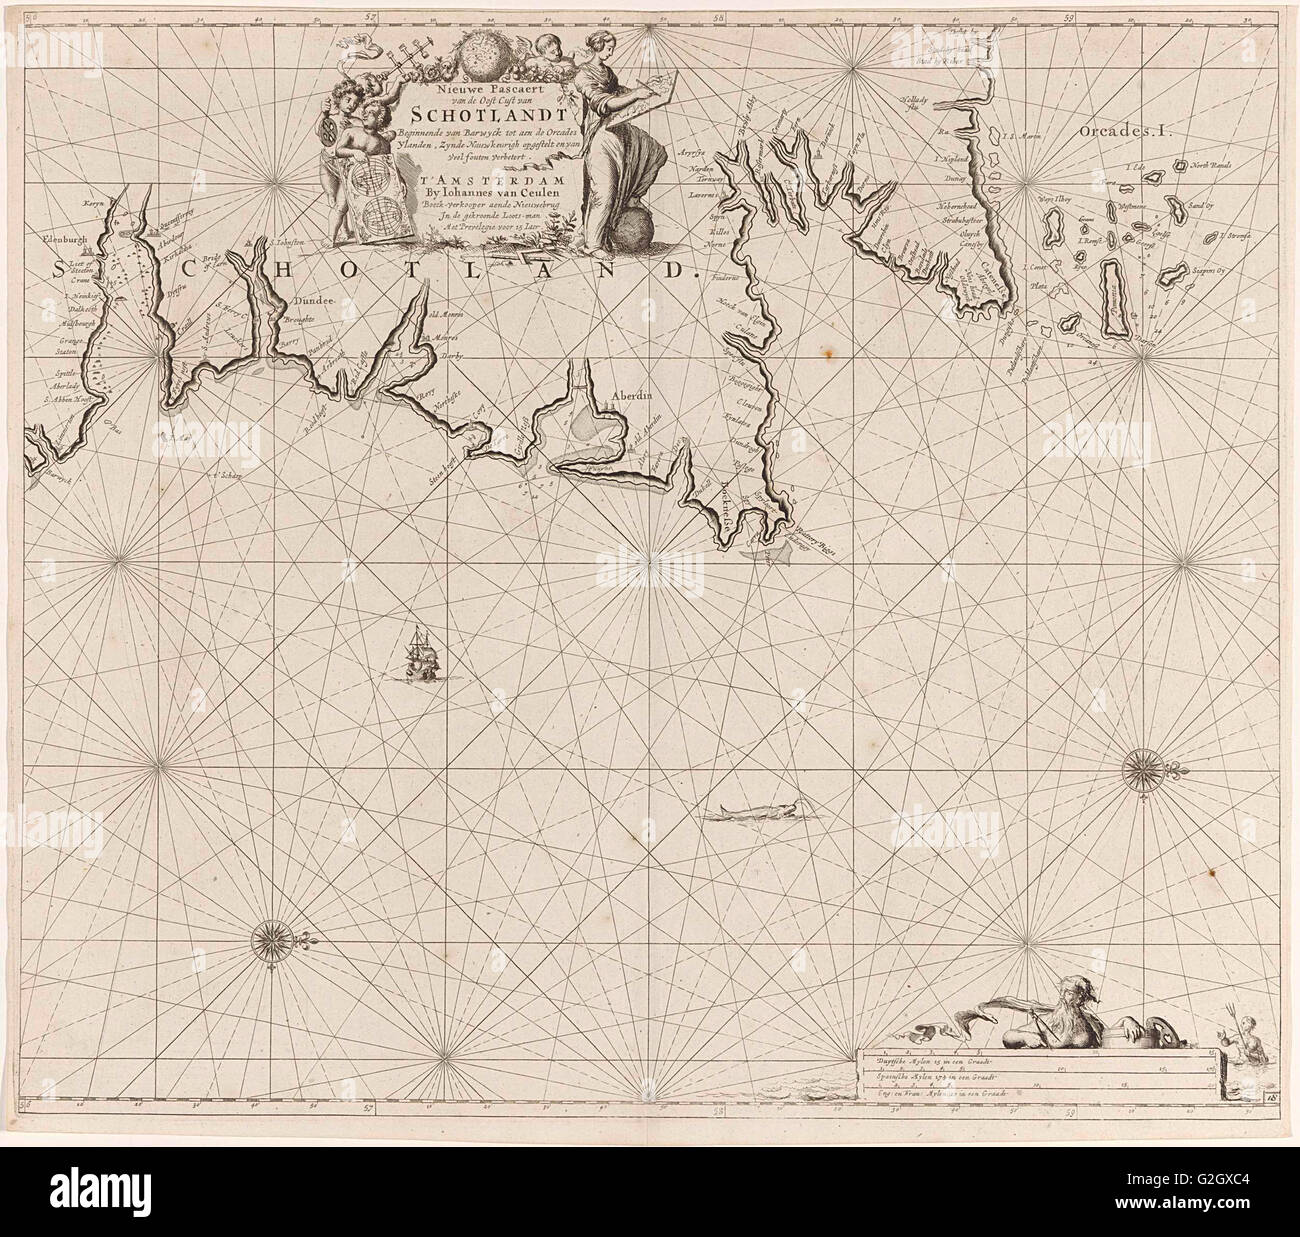 Sea chart of part of north east coast of Scotland and the Orkney Islands, Jan Luyken, Johannes van Keulen I, unknown, - Stock Image